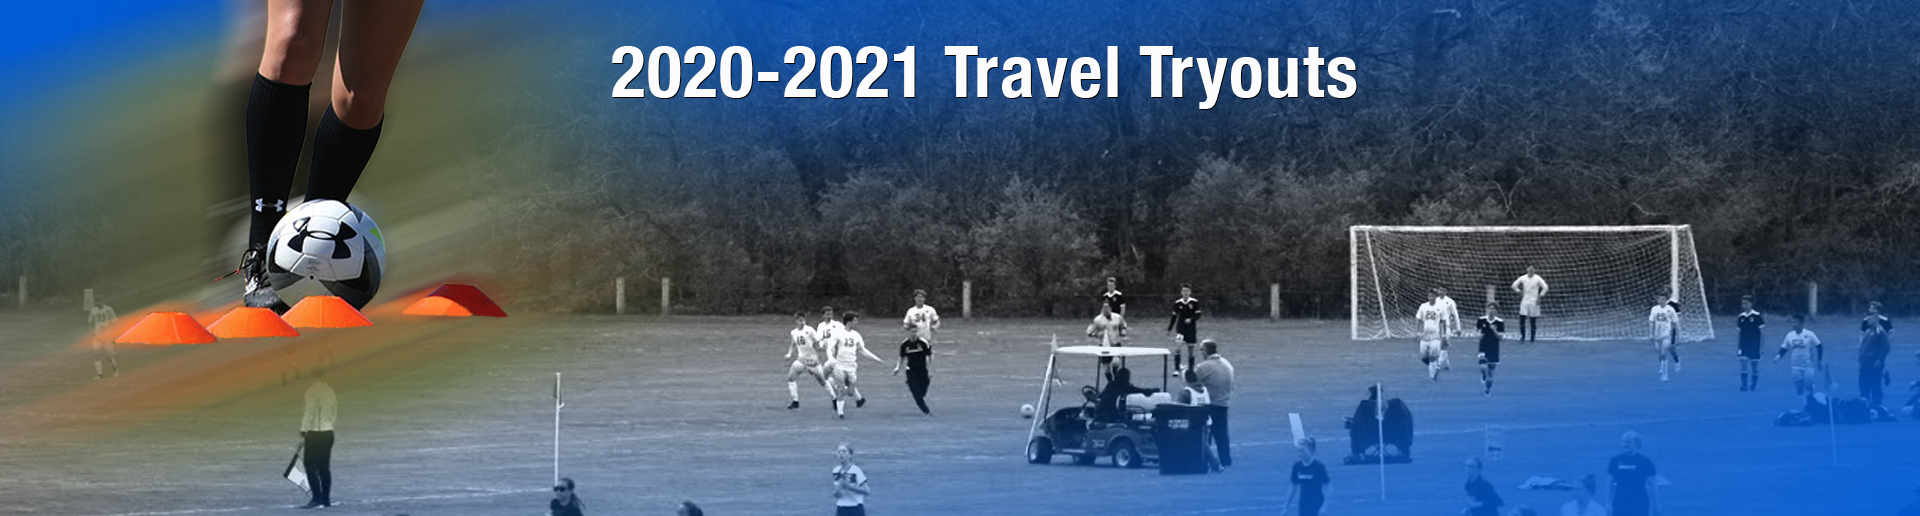 2020-21 Travel Tryouts